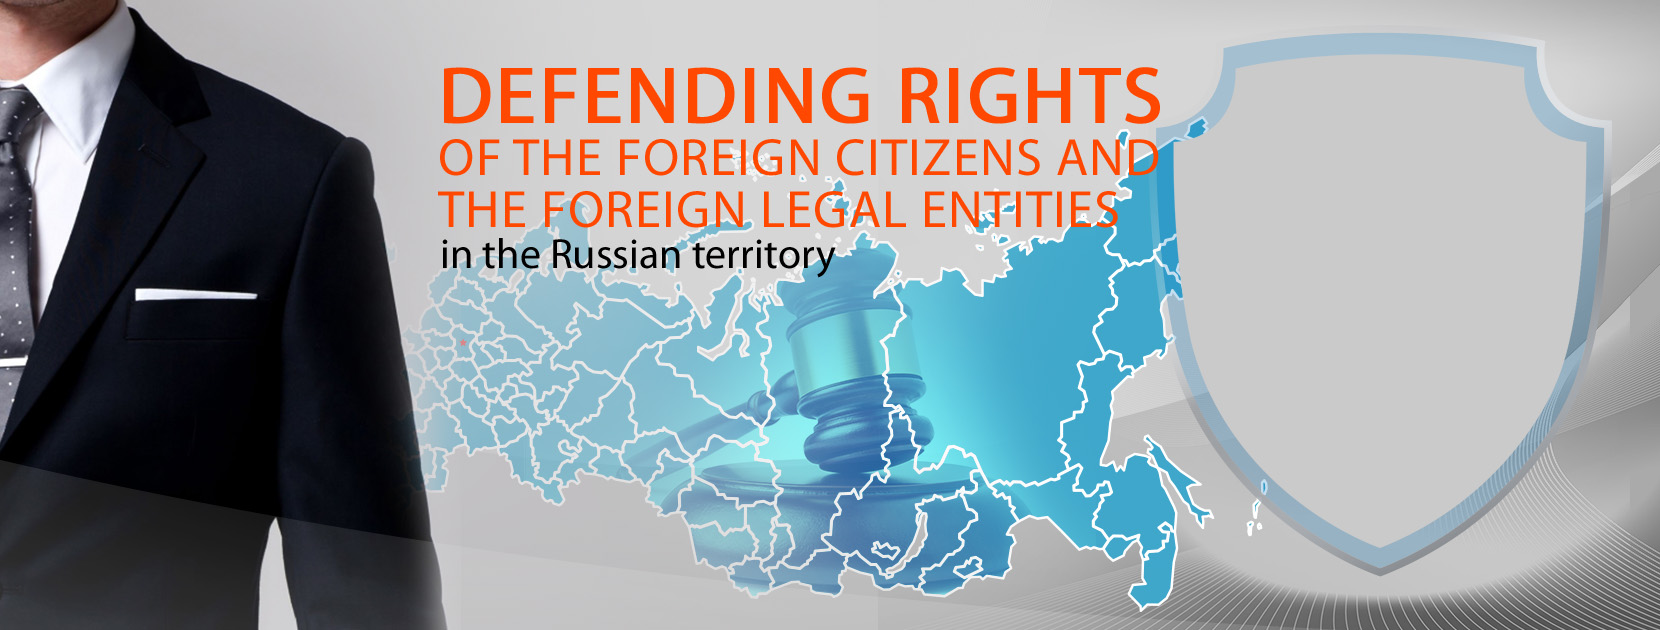 Our lawyers protect the rights of foreign citizens and legal entities throughout Russia